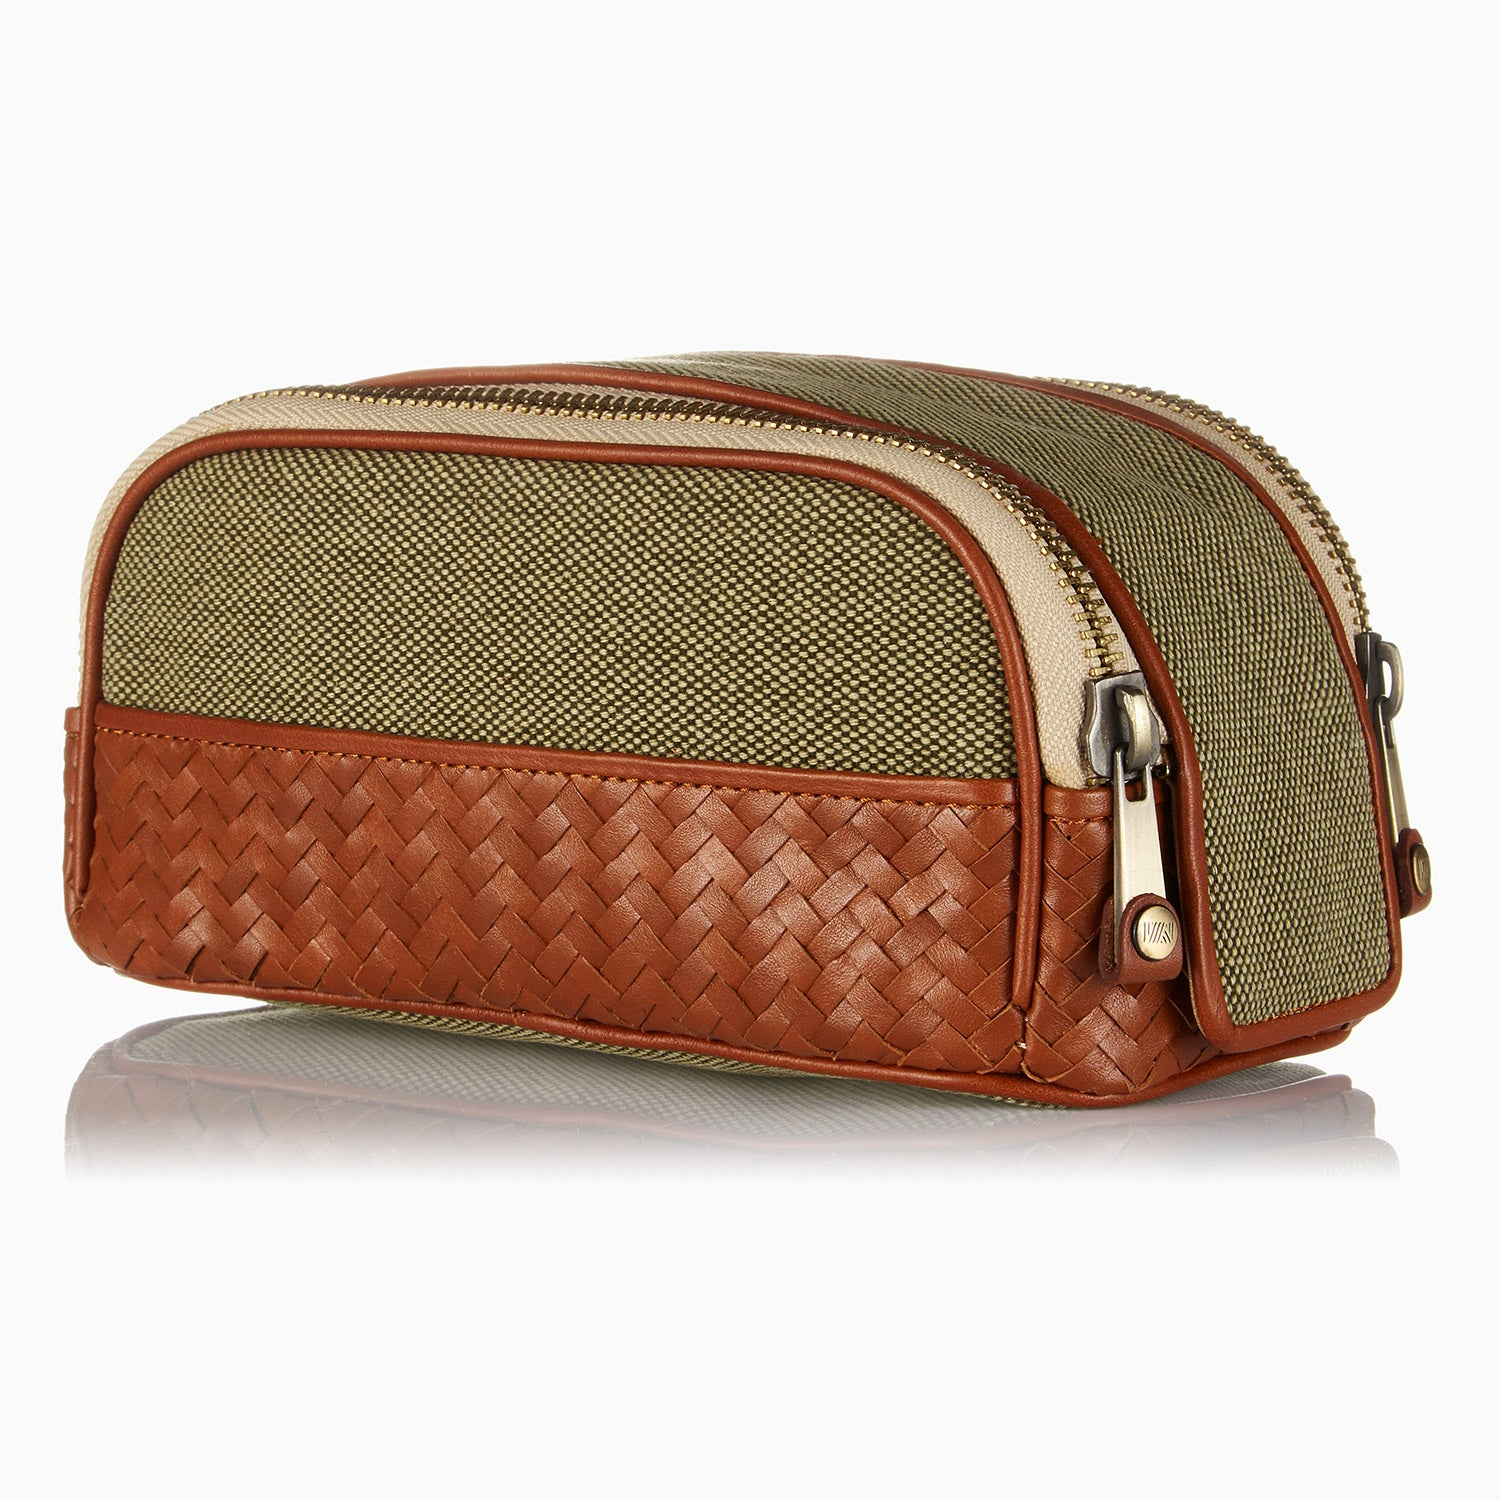 Herringbone Duo-Zip Wash Bag, Tan: Men's Toiletry Travel Bag